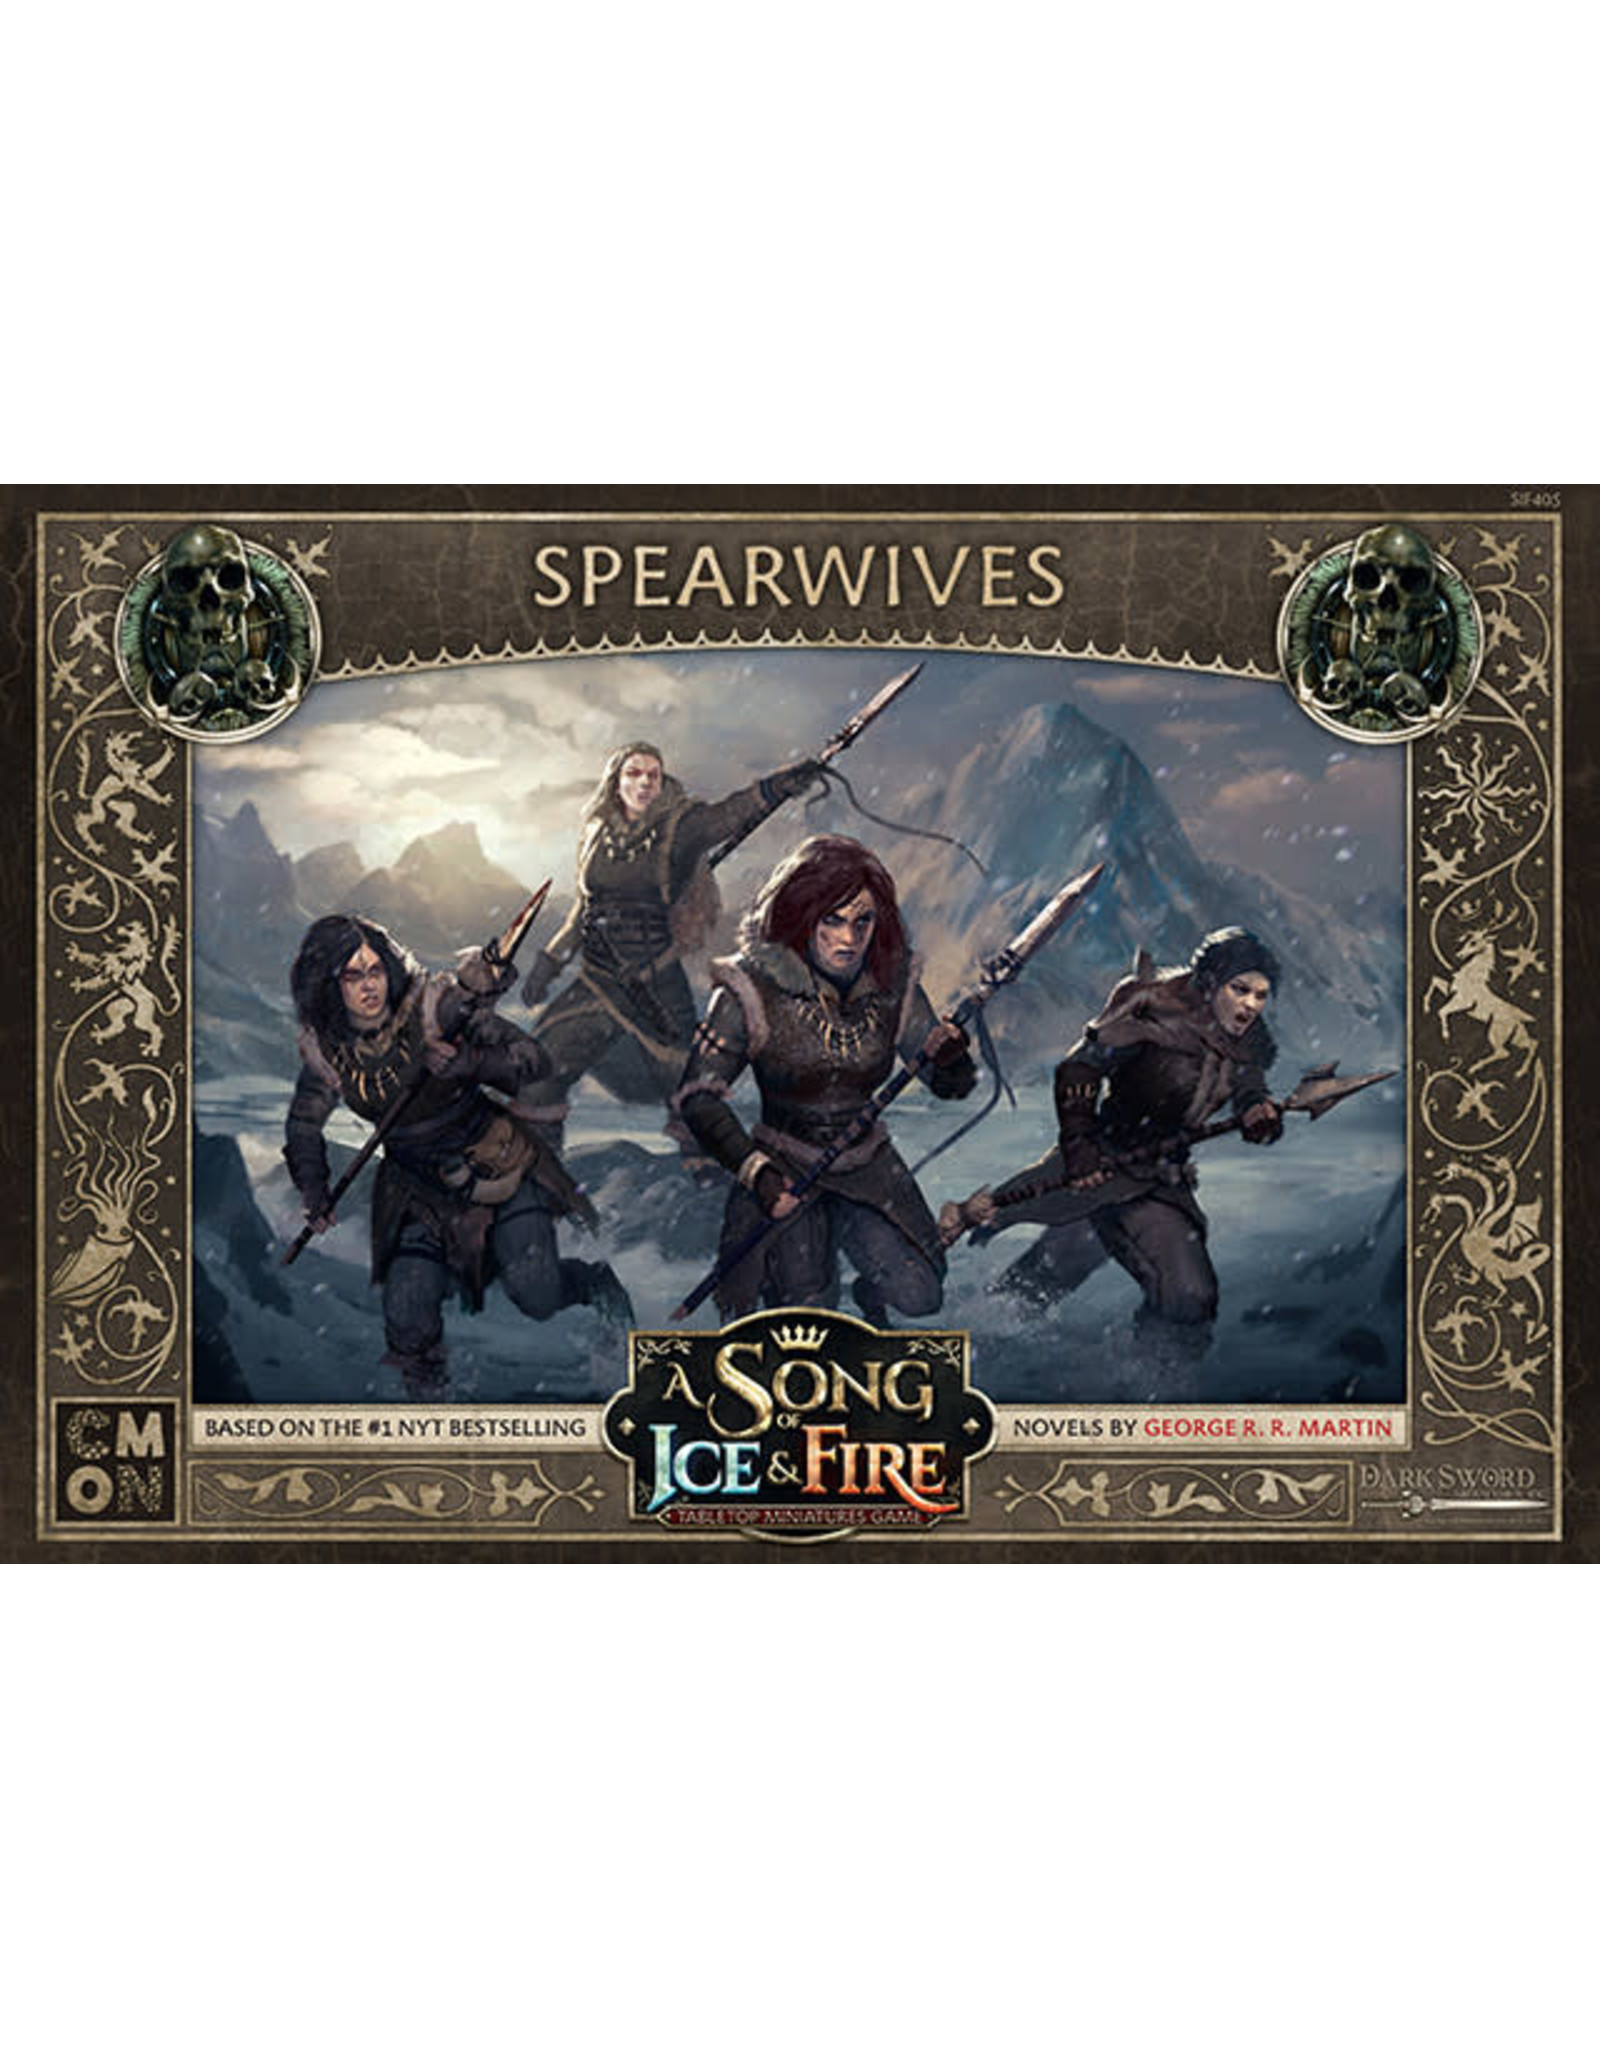 CMON A SONG OF ICE & FIRE: SPEARWIVES